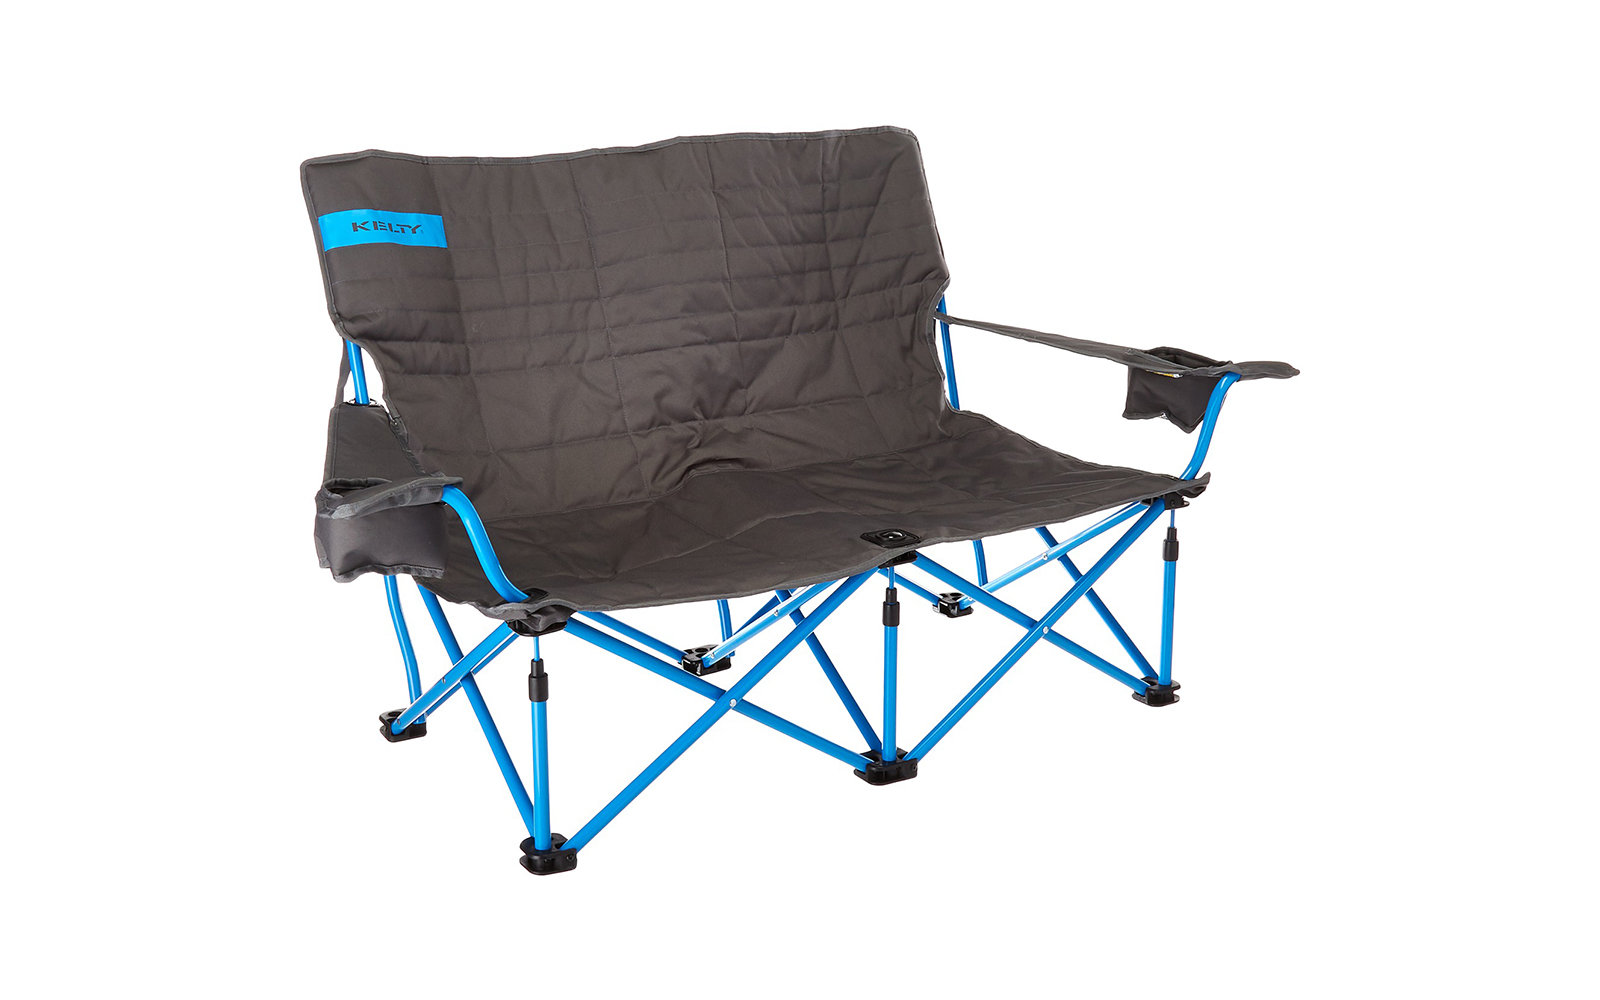 Most Comfortable Couch >> The Best Folding Camping Chairs | Travel + Leisure